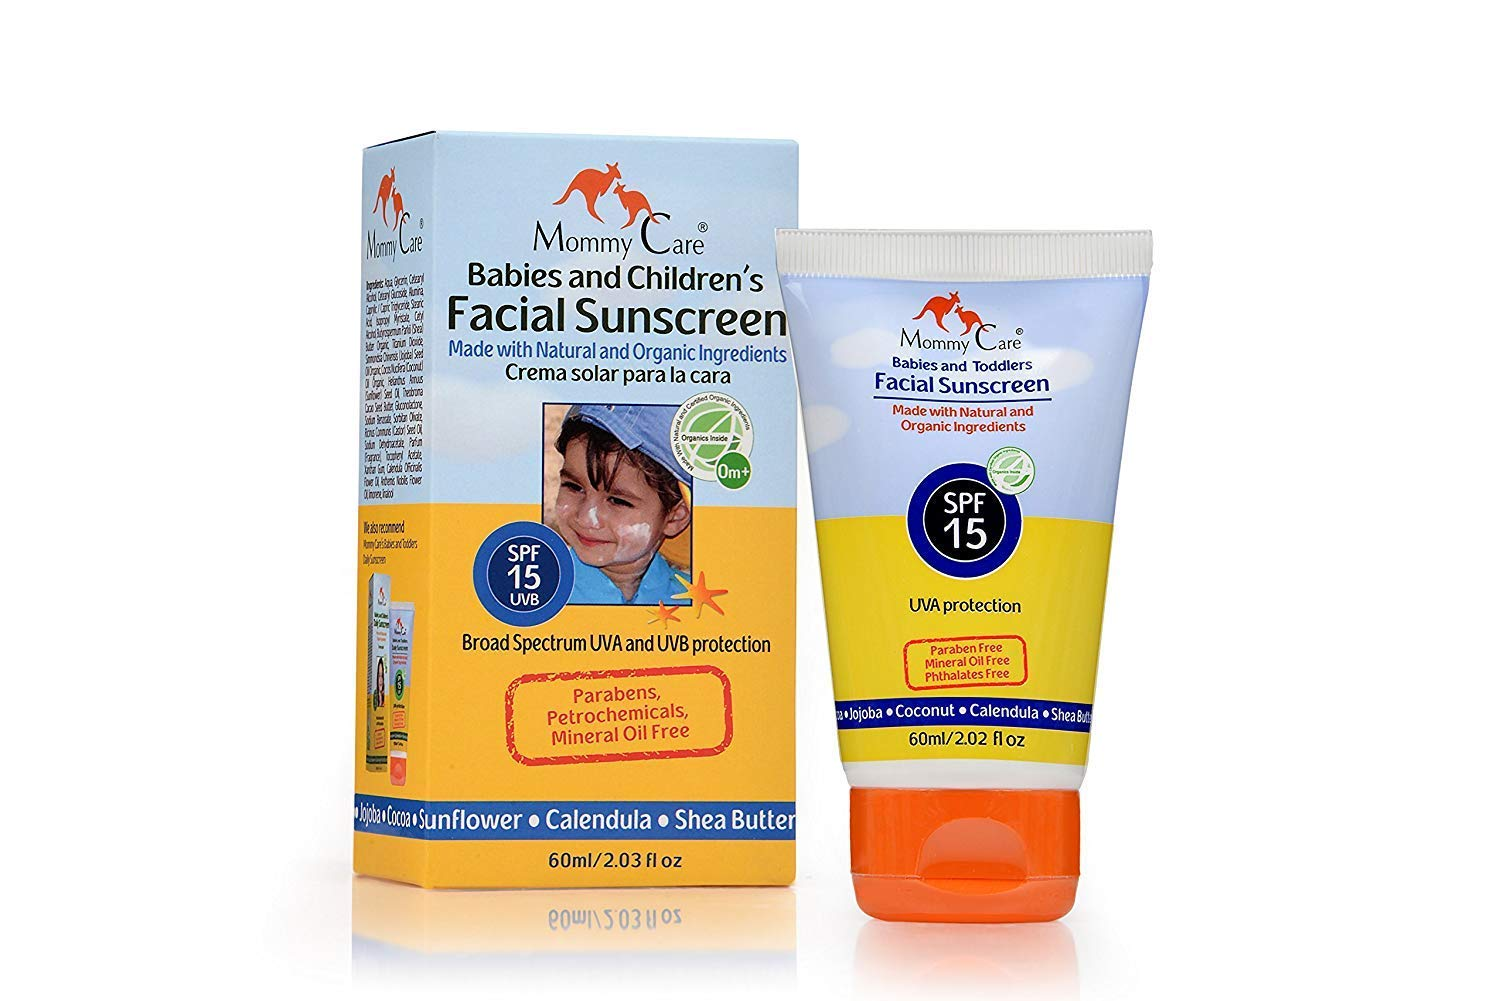 15 SPF Daily Facial Baby Sunscreen [Mommy Care] Safe for Babies, Toddlers and the Whole Family. UVA/UVB Protection Broad Spectrum – Paraben Free – Organic Vegan Sun Protection 2 fl.oz